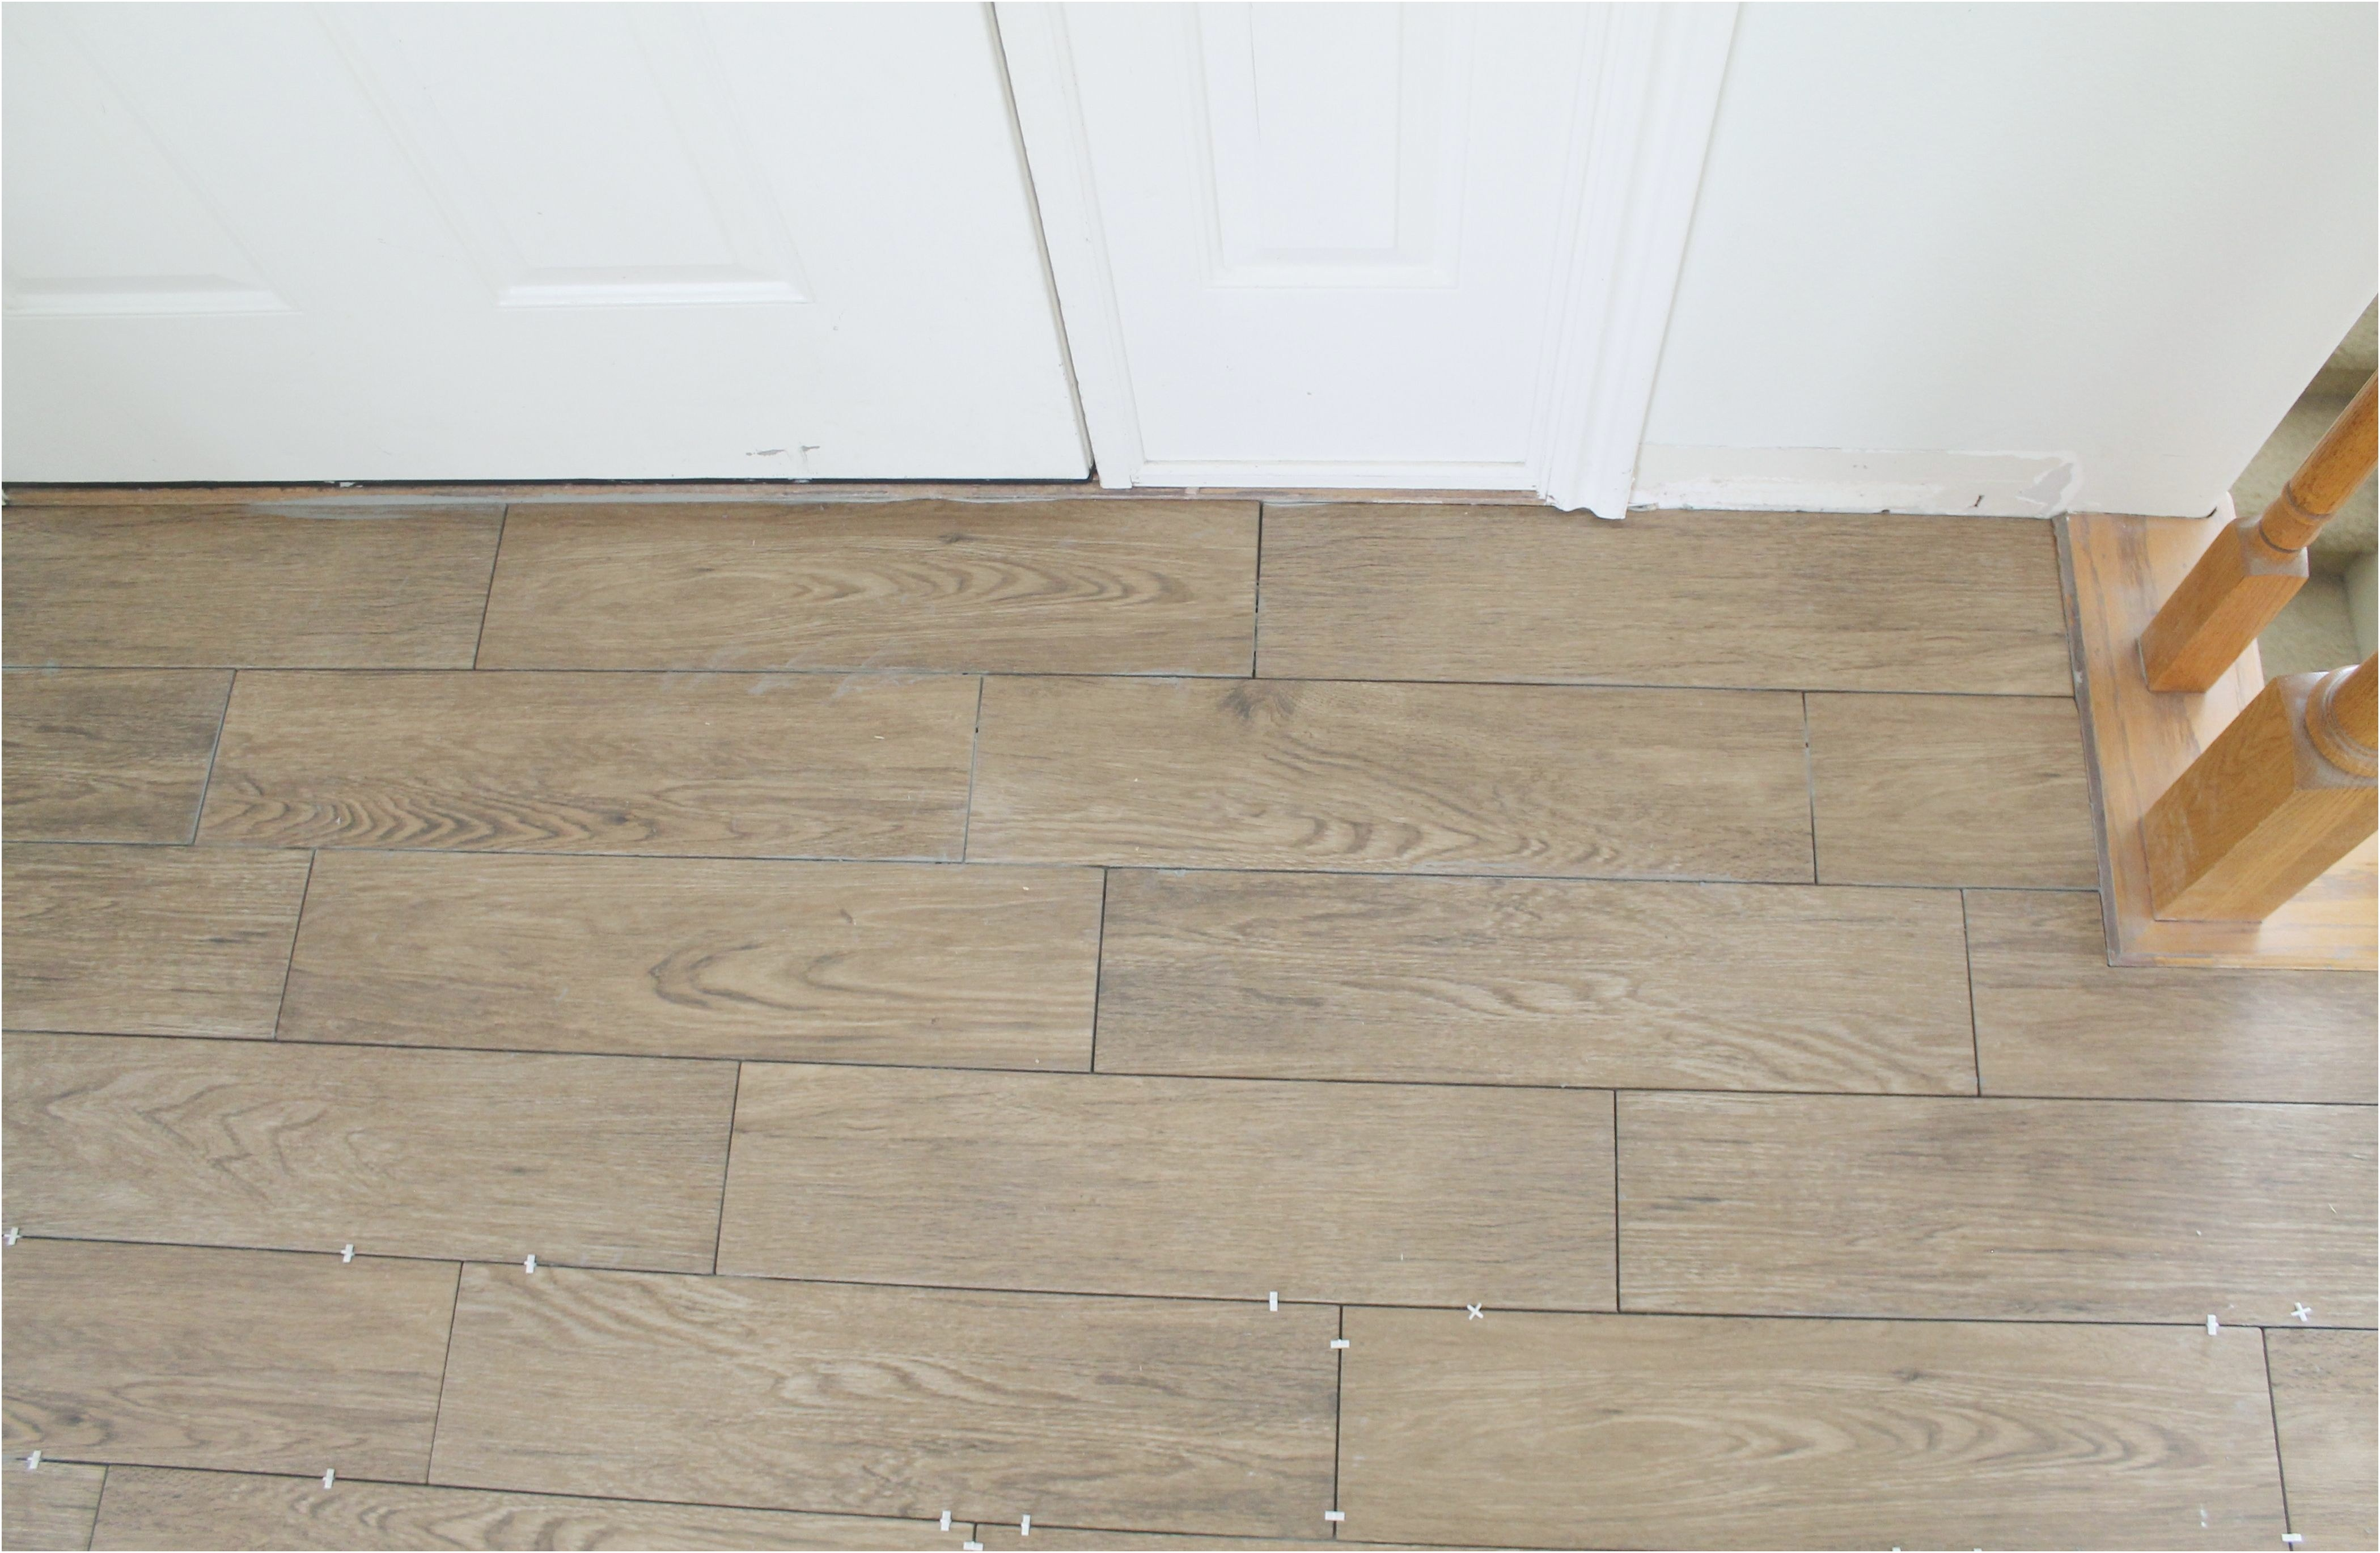 Removing Grout From Ceramic Tile